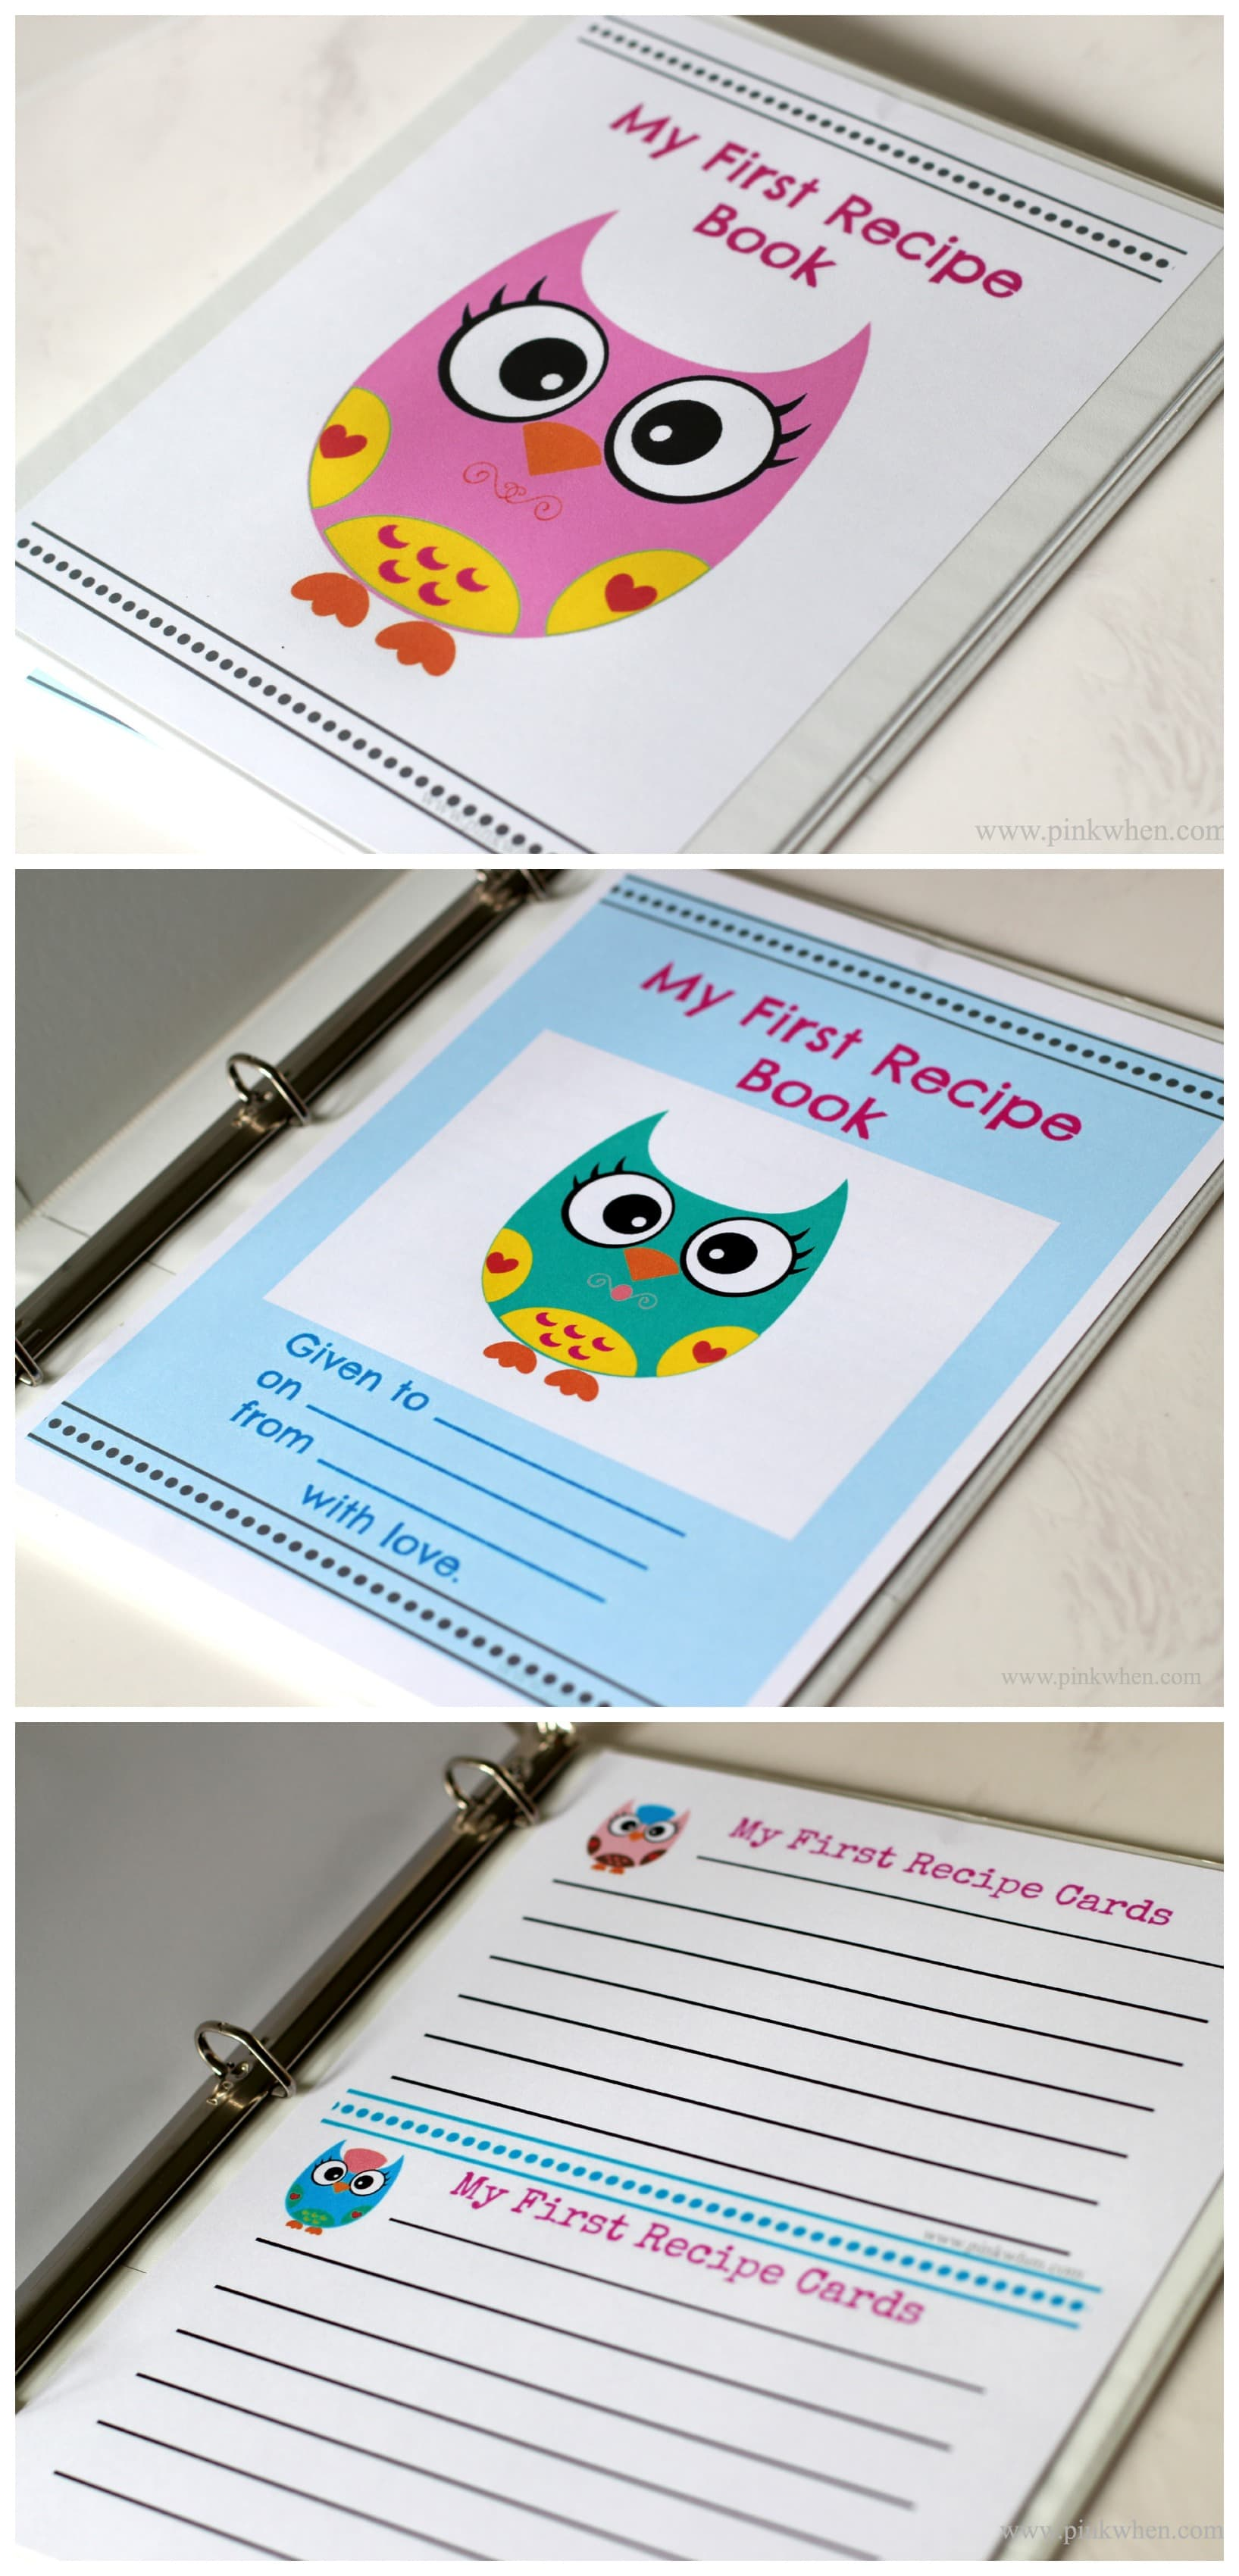 My First Recipe Book Series of Free Printables from PinkWhen.com